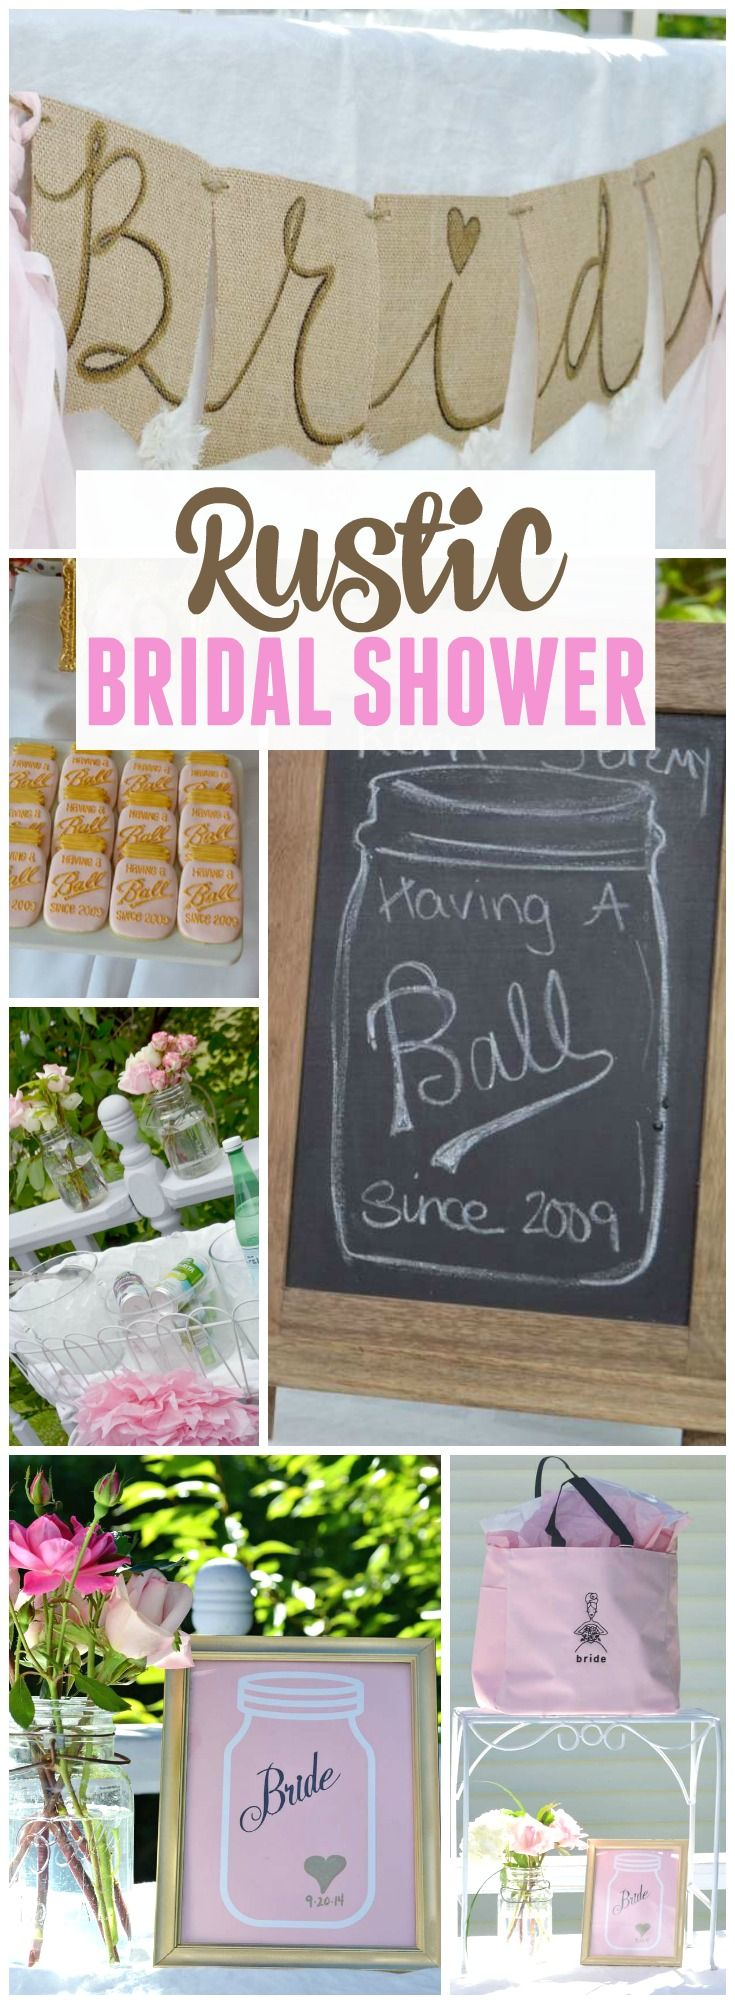 Having a Ball Since 2009 was the theme of this rustic bridal shower! See more party ideas at CatchMyParty.com!